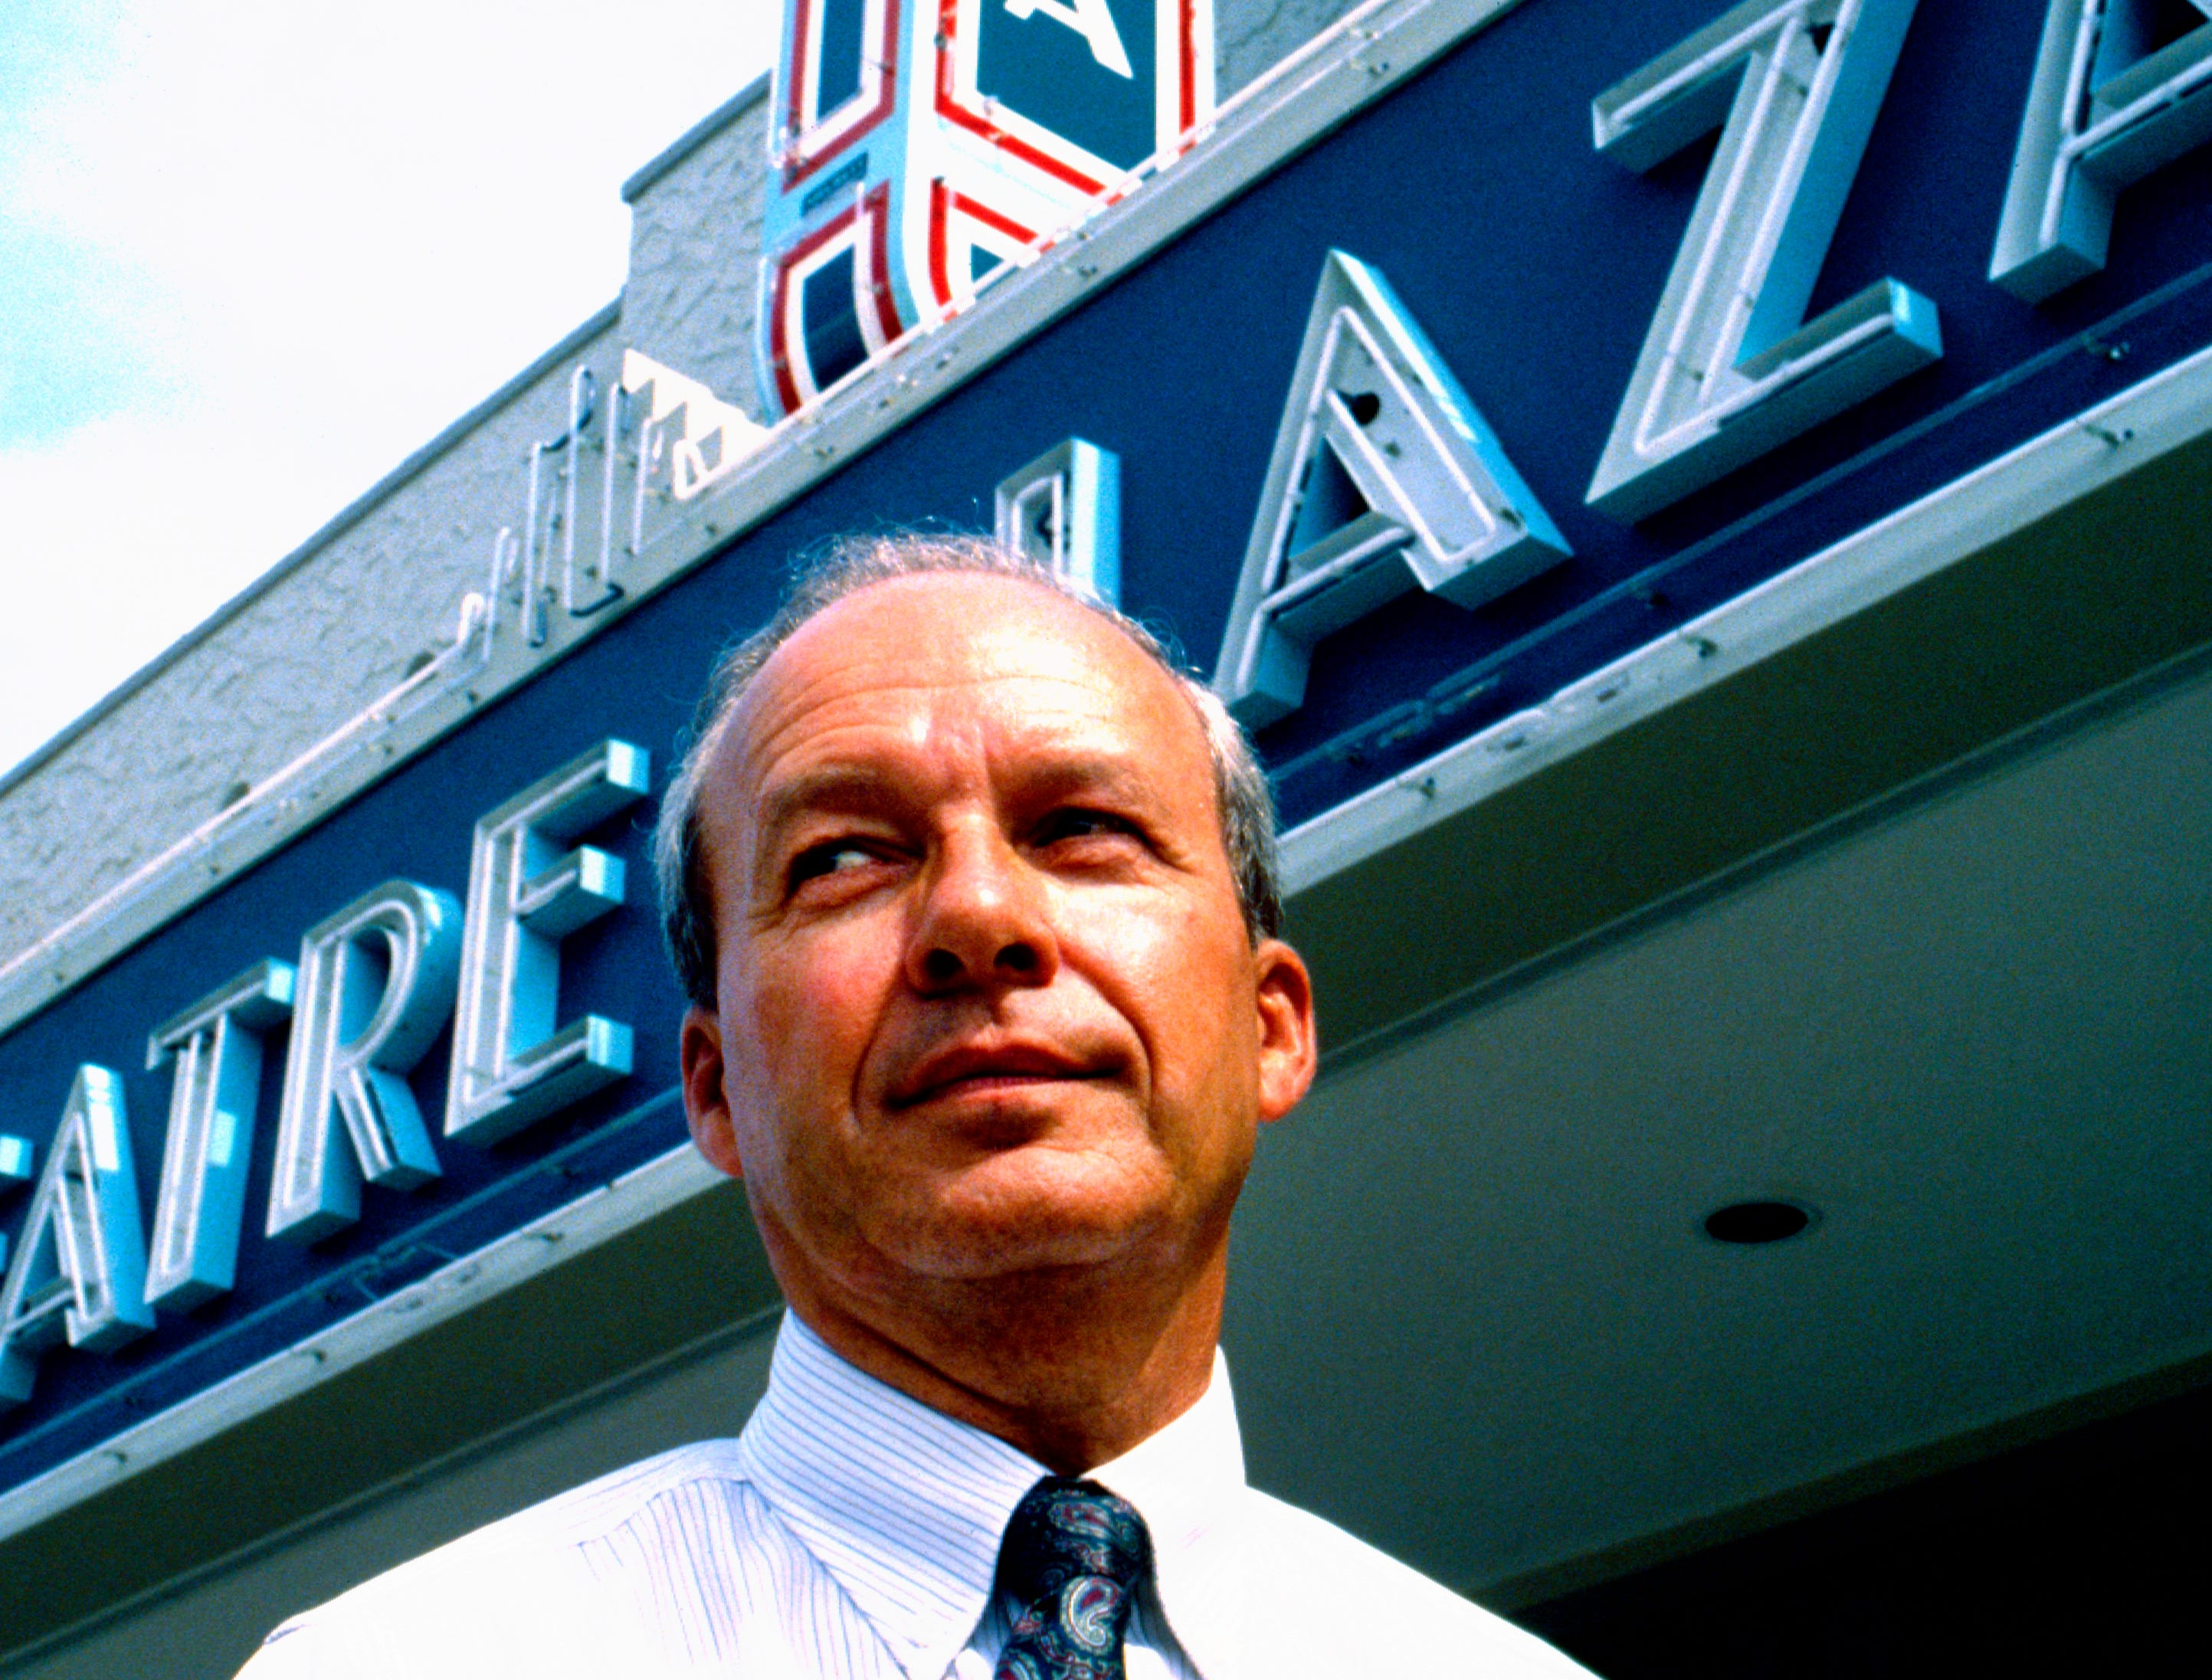 October 17, 1991 - Robert Brackett invested in downtown Vero Beach's future by completing phase one of the restoration of the Theatre Plaza, the former Vero and Florida theatres.